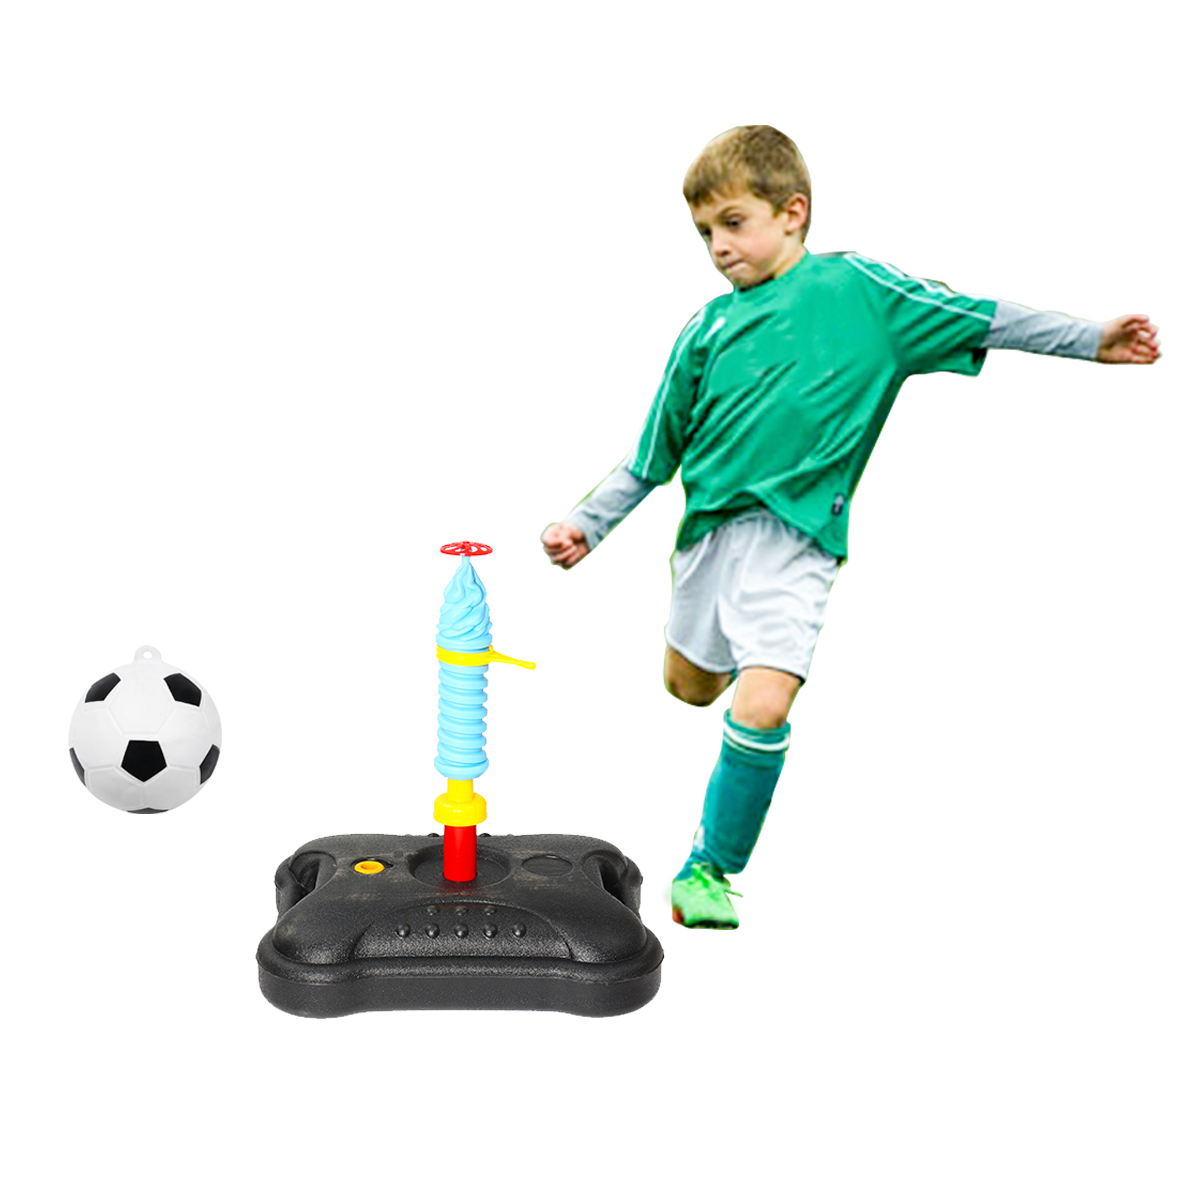 Portable Tetherball Toys Kids Ball Game Children Outdoor Sport Play Fun Ball Set